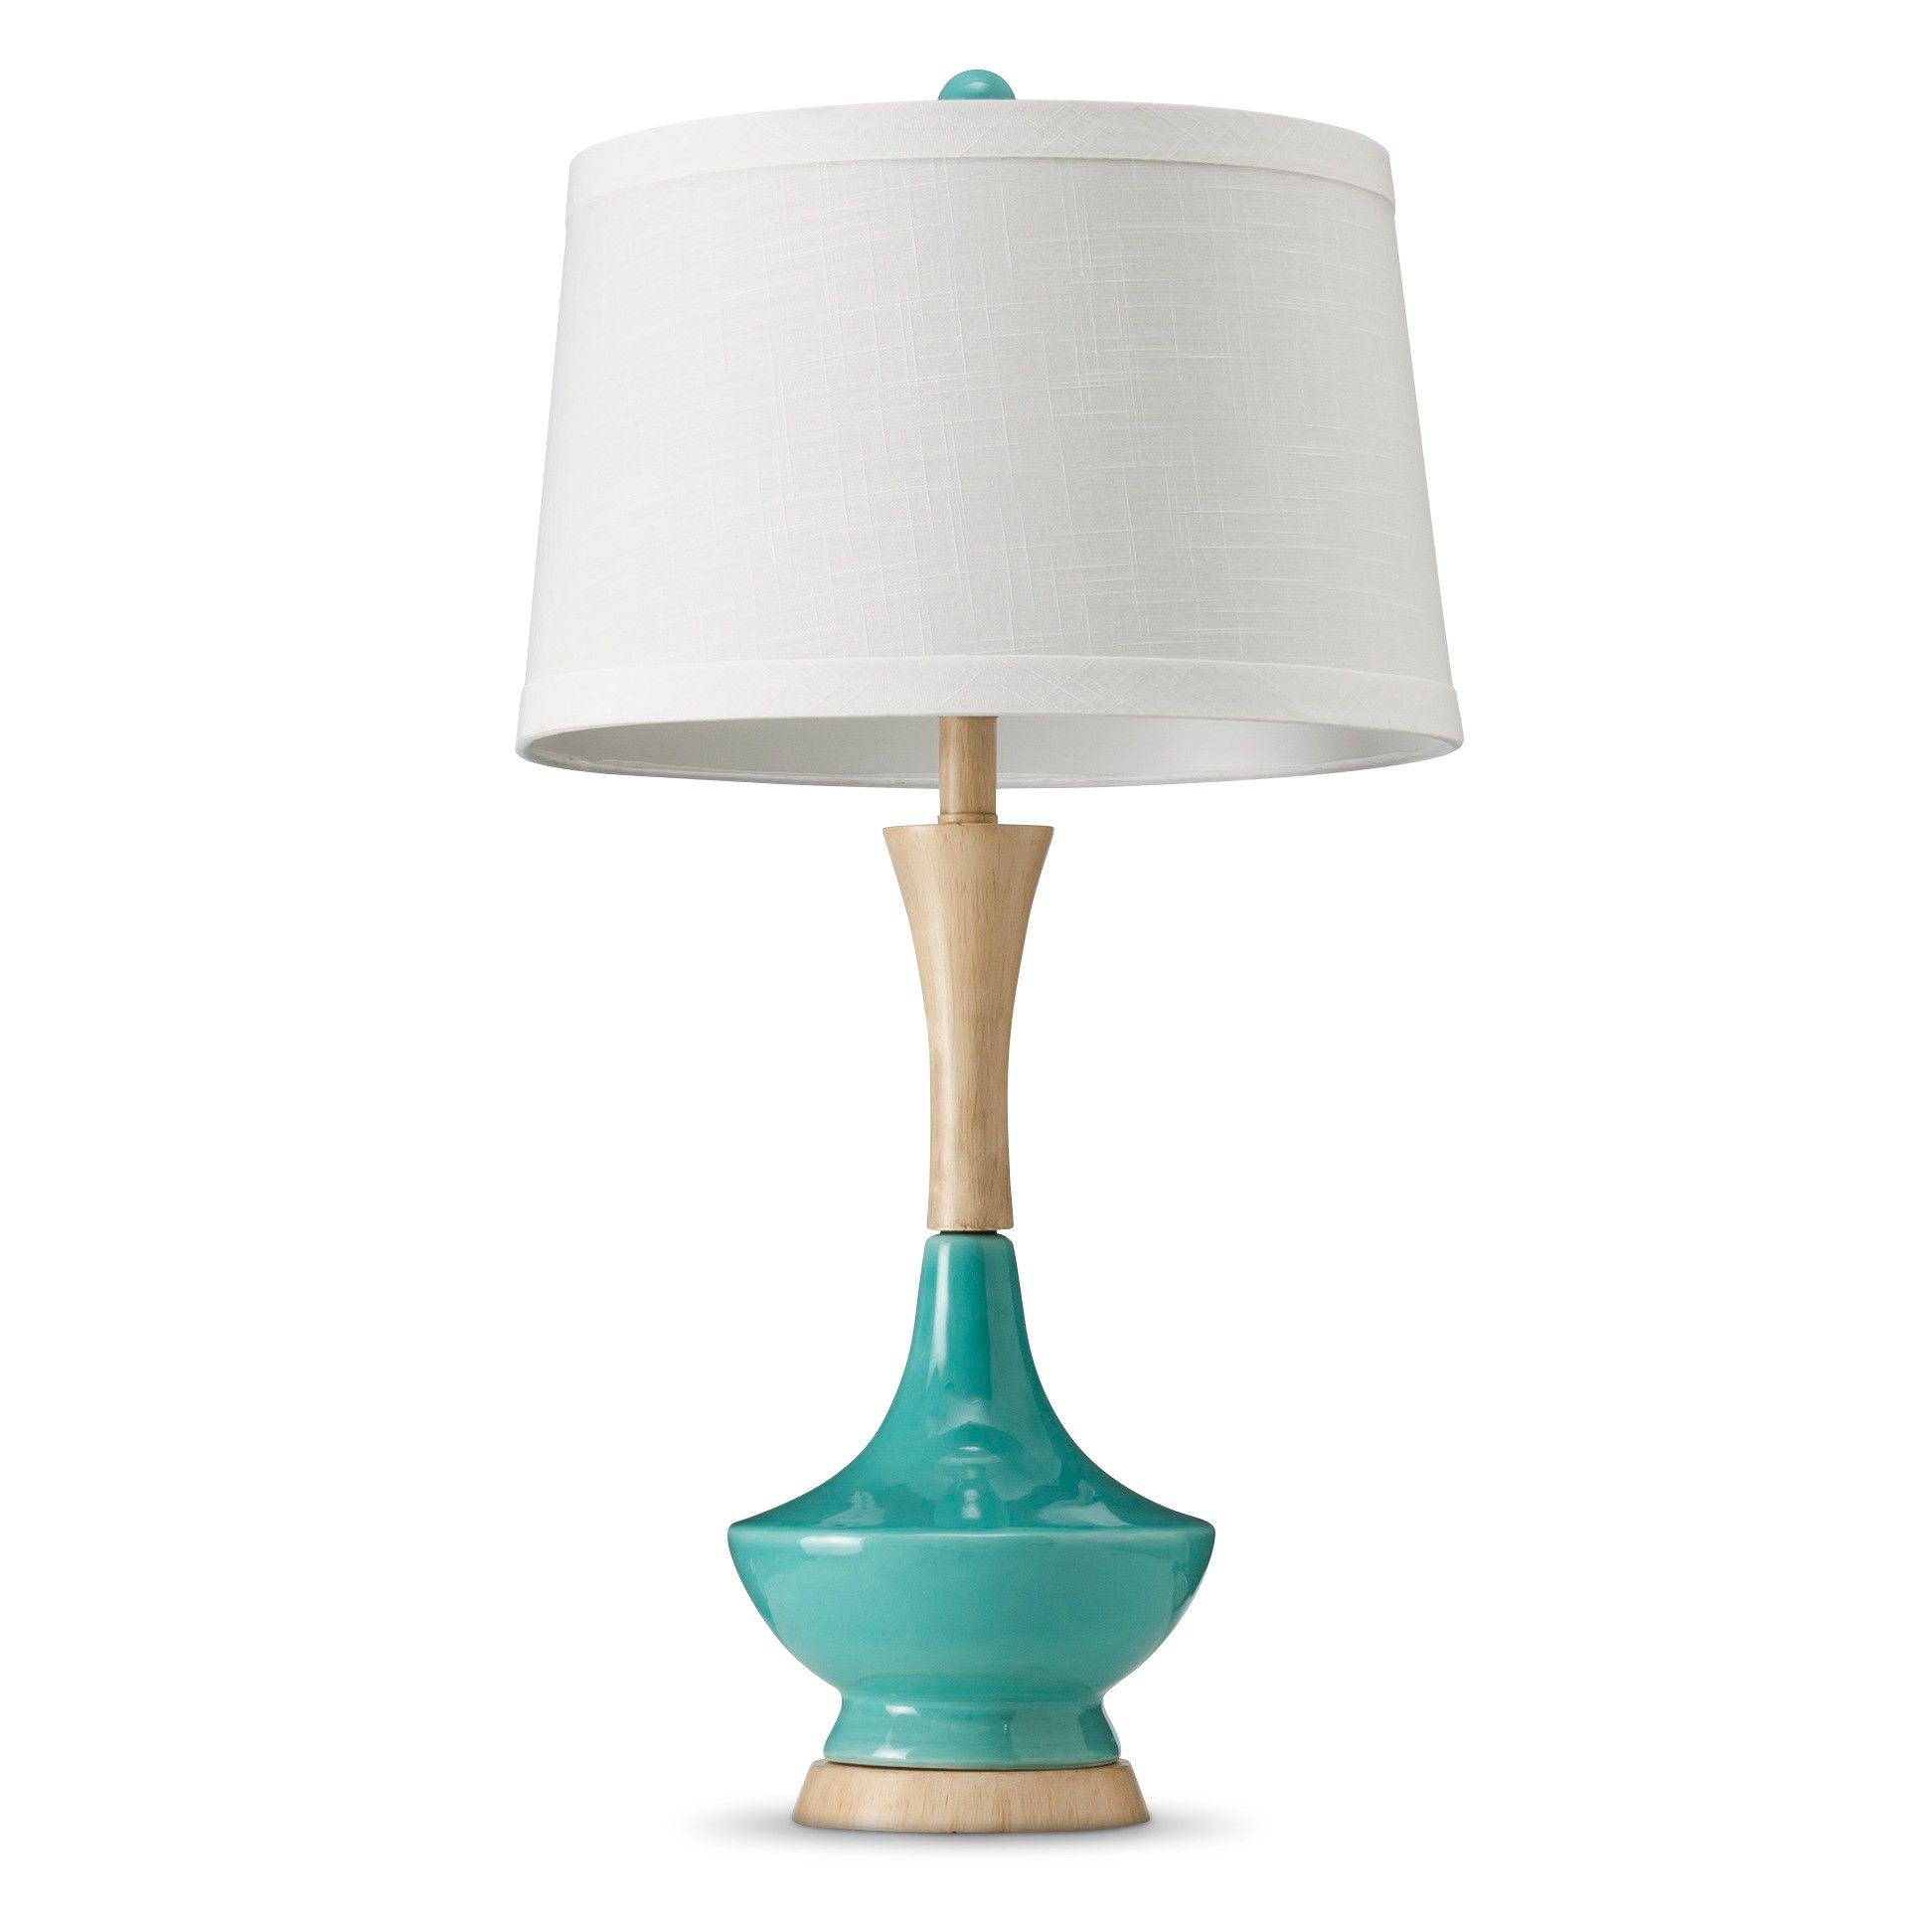 Ceramic Table Lamp With WoodStyle Base Teal Target